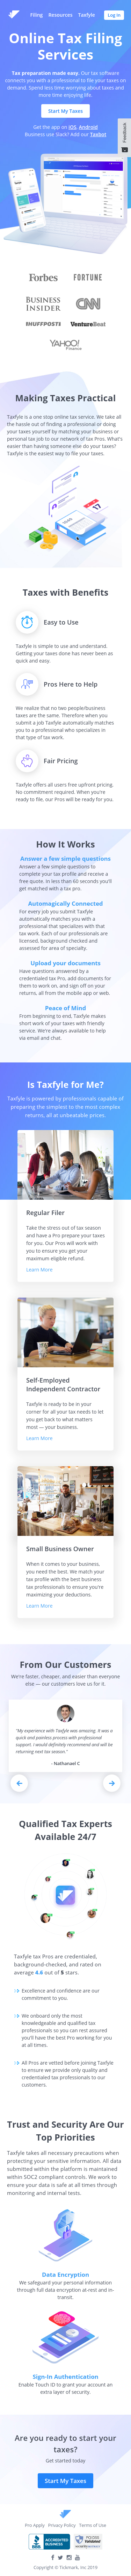 Example of Design for Finance, Accounting & Auditing, Tax Preparation & Planning, Mobile Landing Page by taxfyle.com-V2 | Mobile Landing Page Design